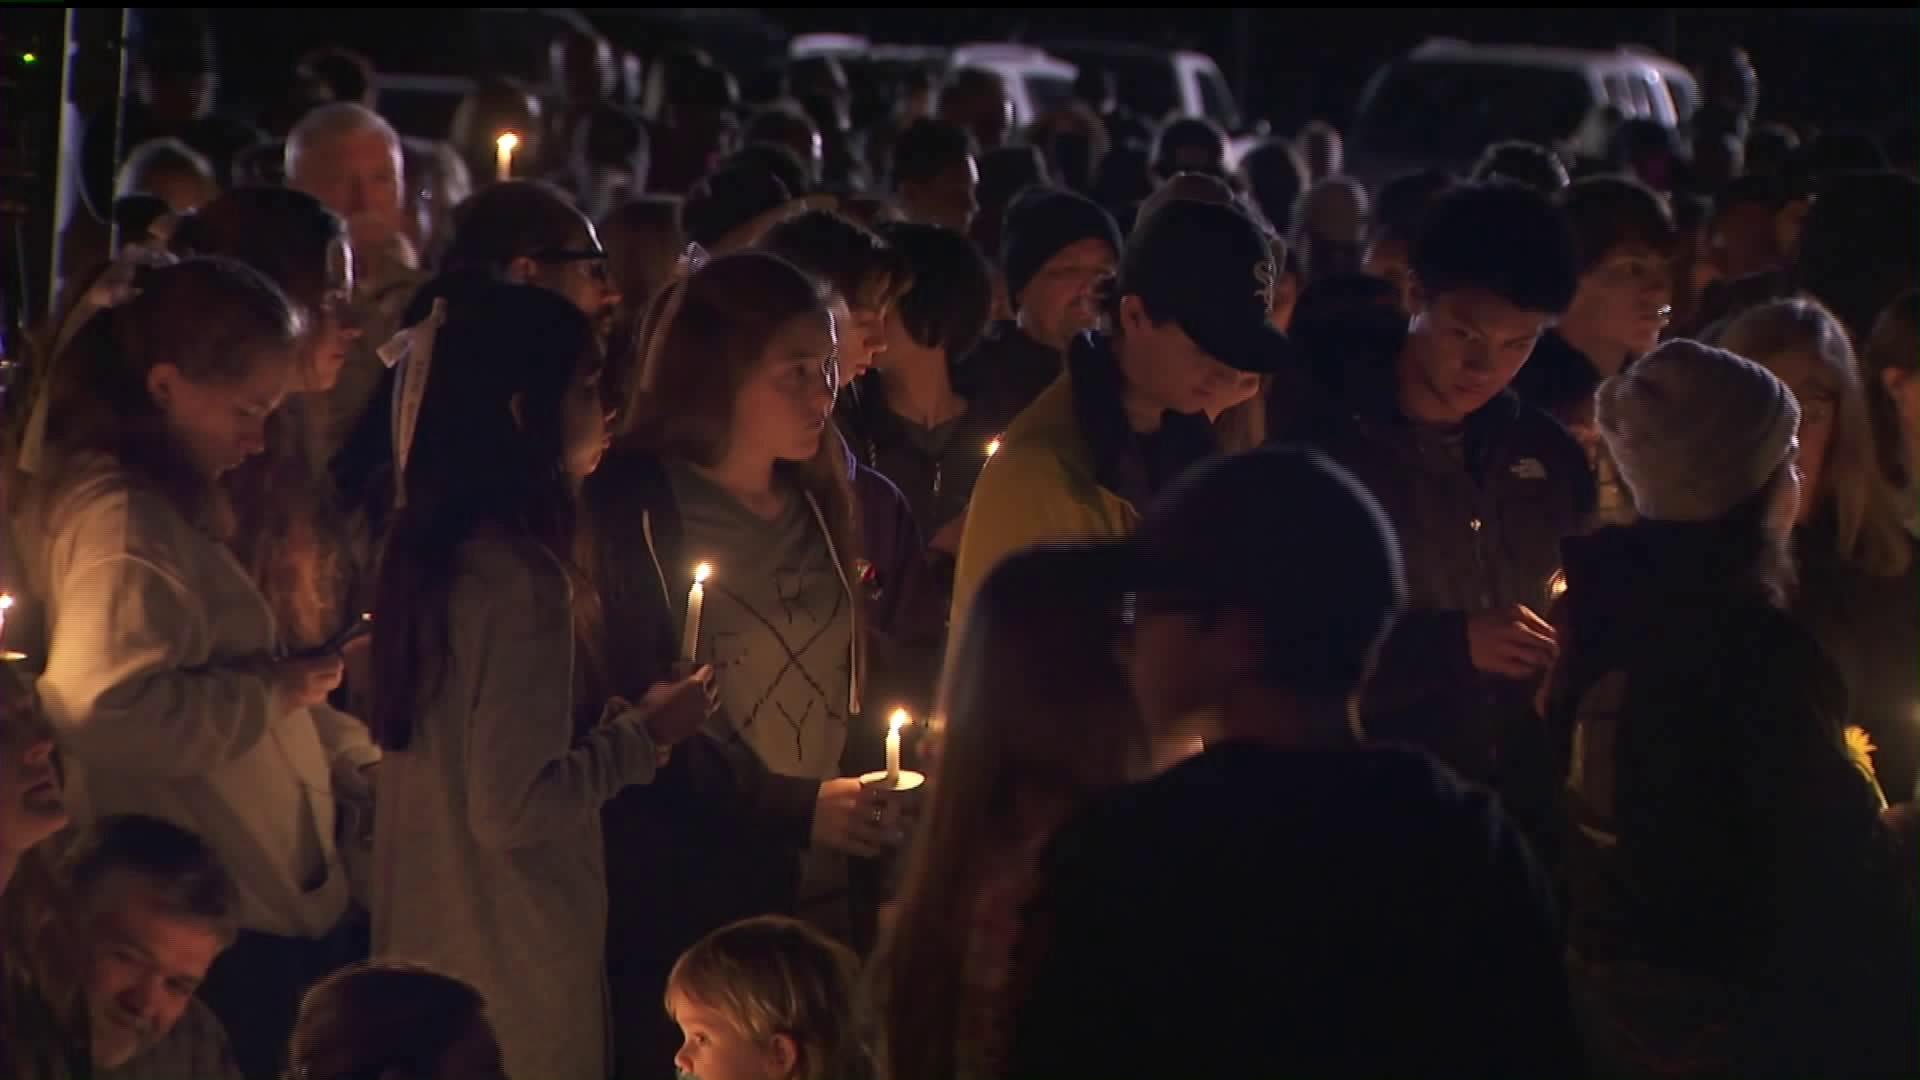 Hundreds attend a vigil on Jan. 24, 2020, for three teens who died in a Temescal Valley crash five days earlier. (Credit: KTLA)